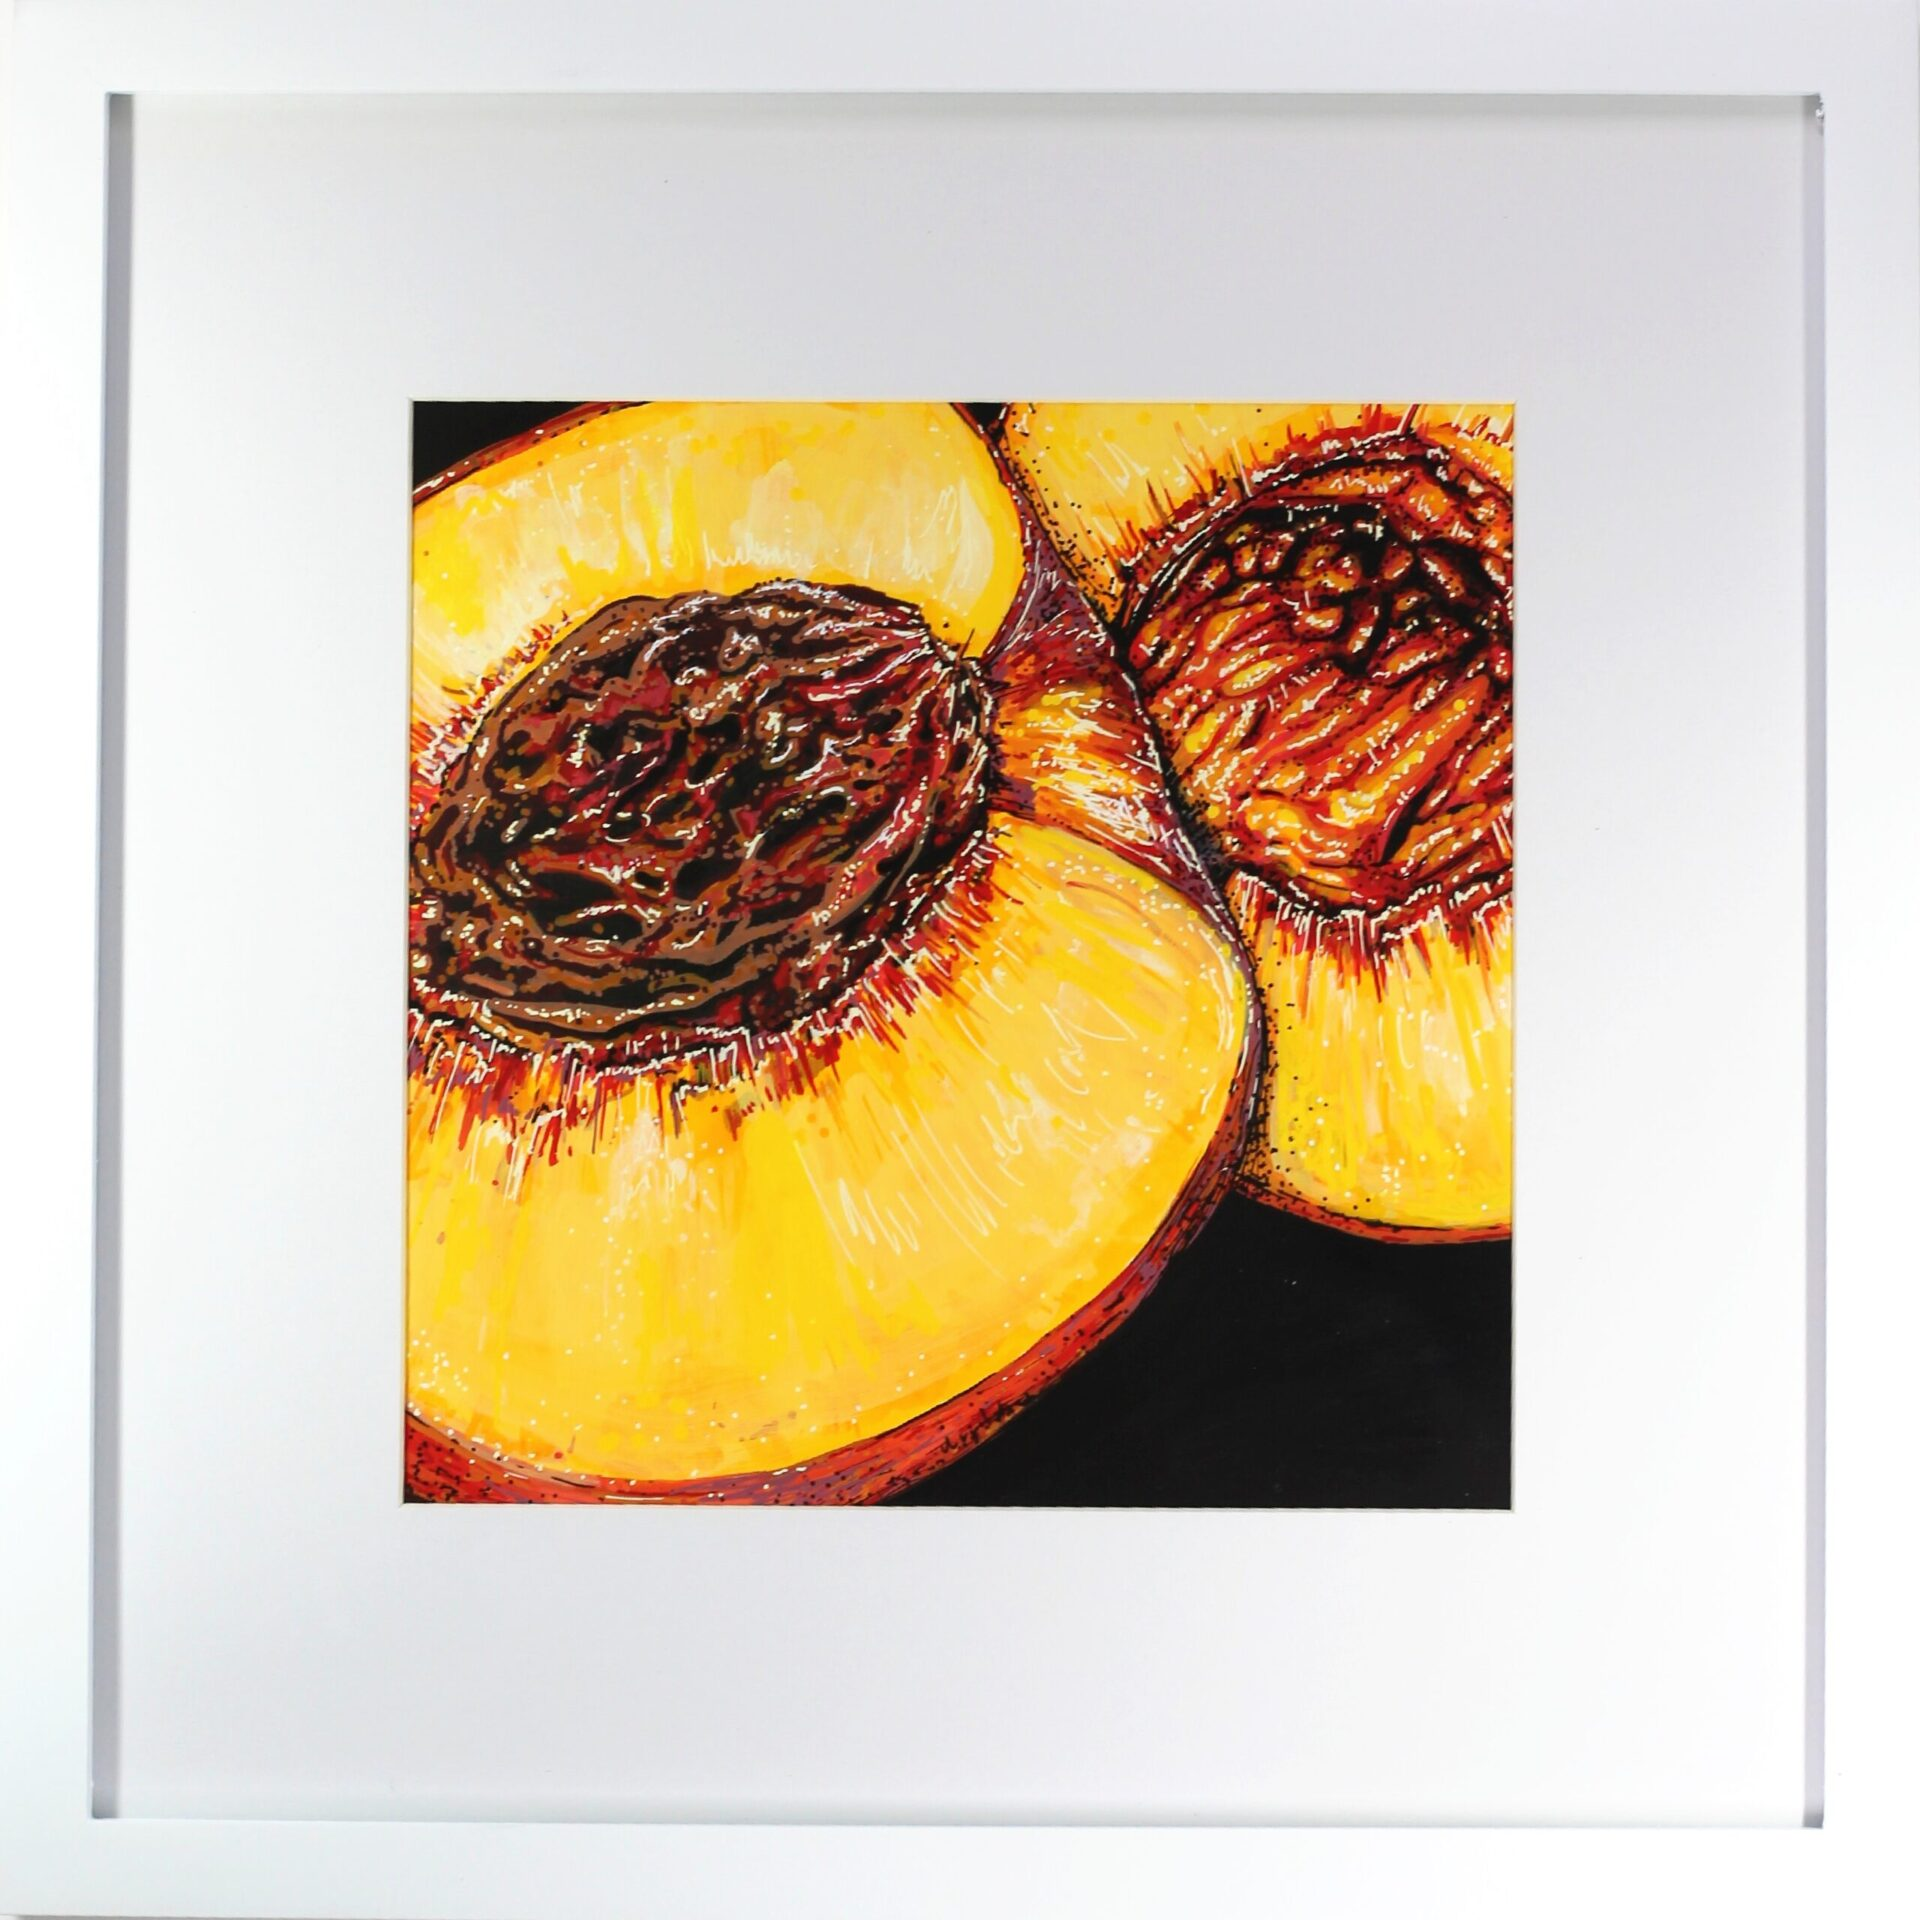 """Angela Faustina, PEACH painting, 2021. Acrylic on bristol board, 8"""" by 8"""" in 10"""" by 10"""" frame."""